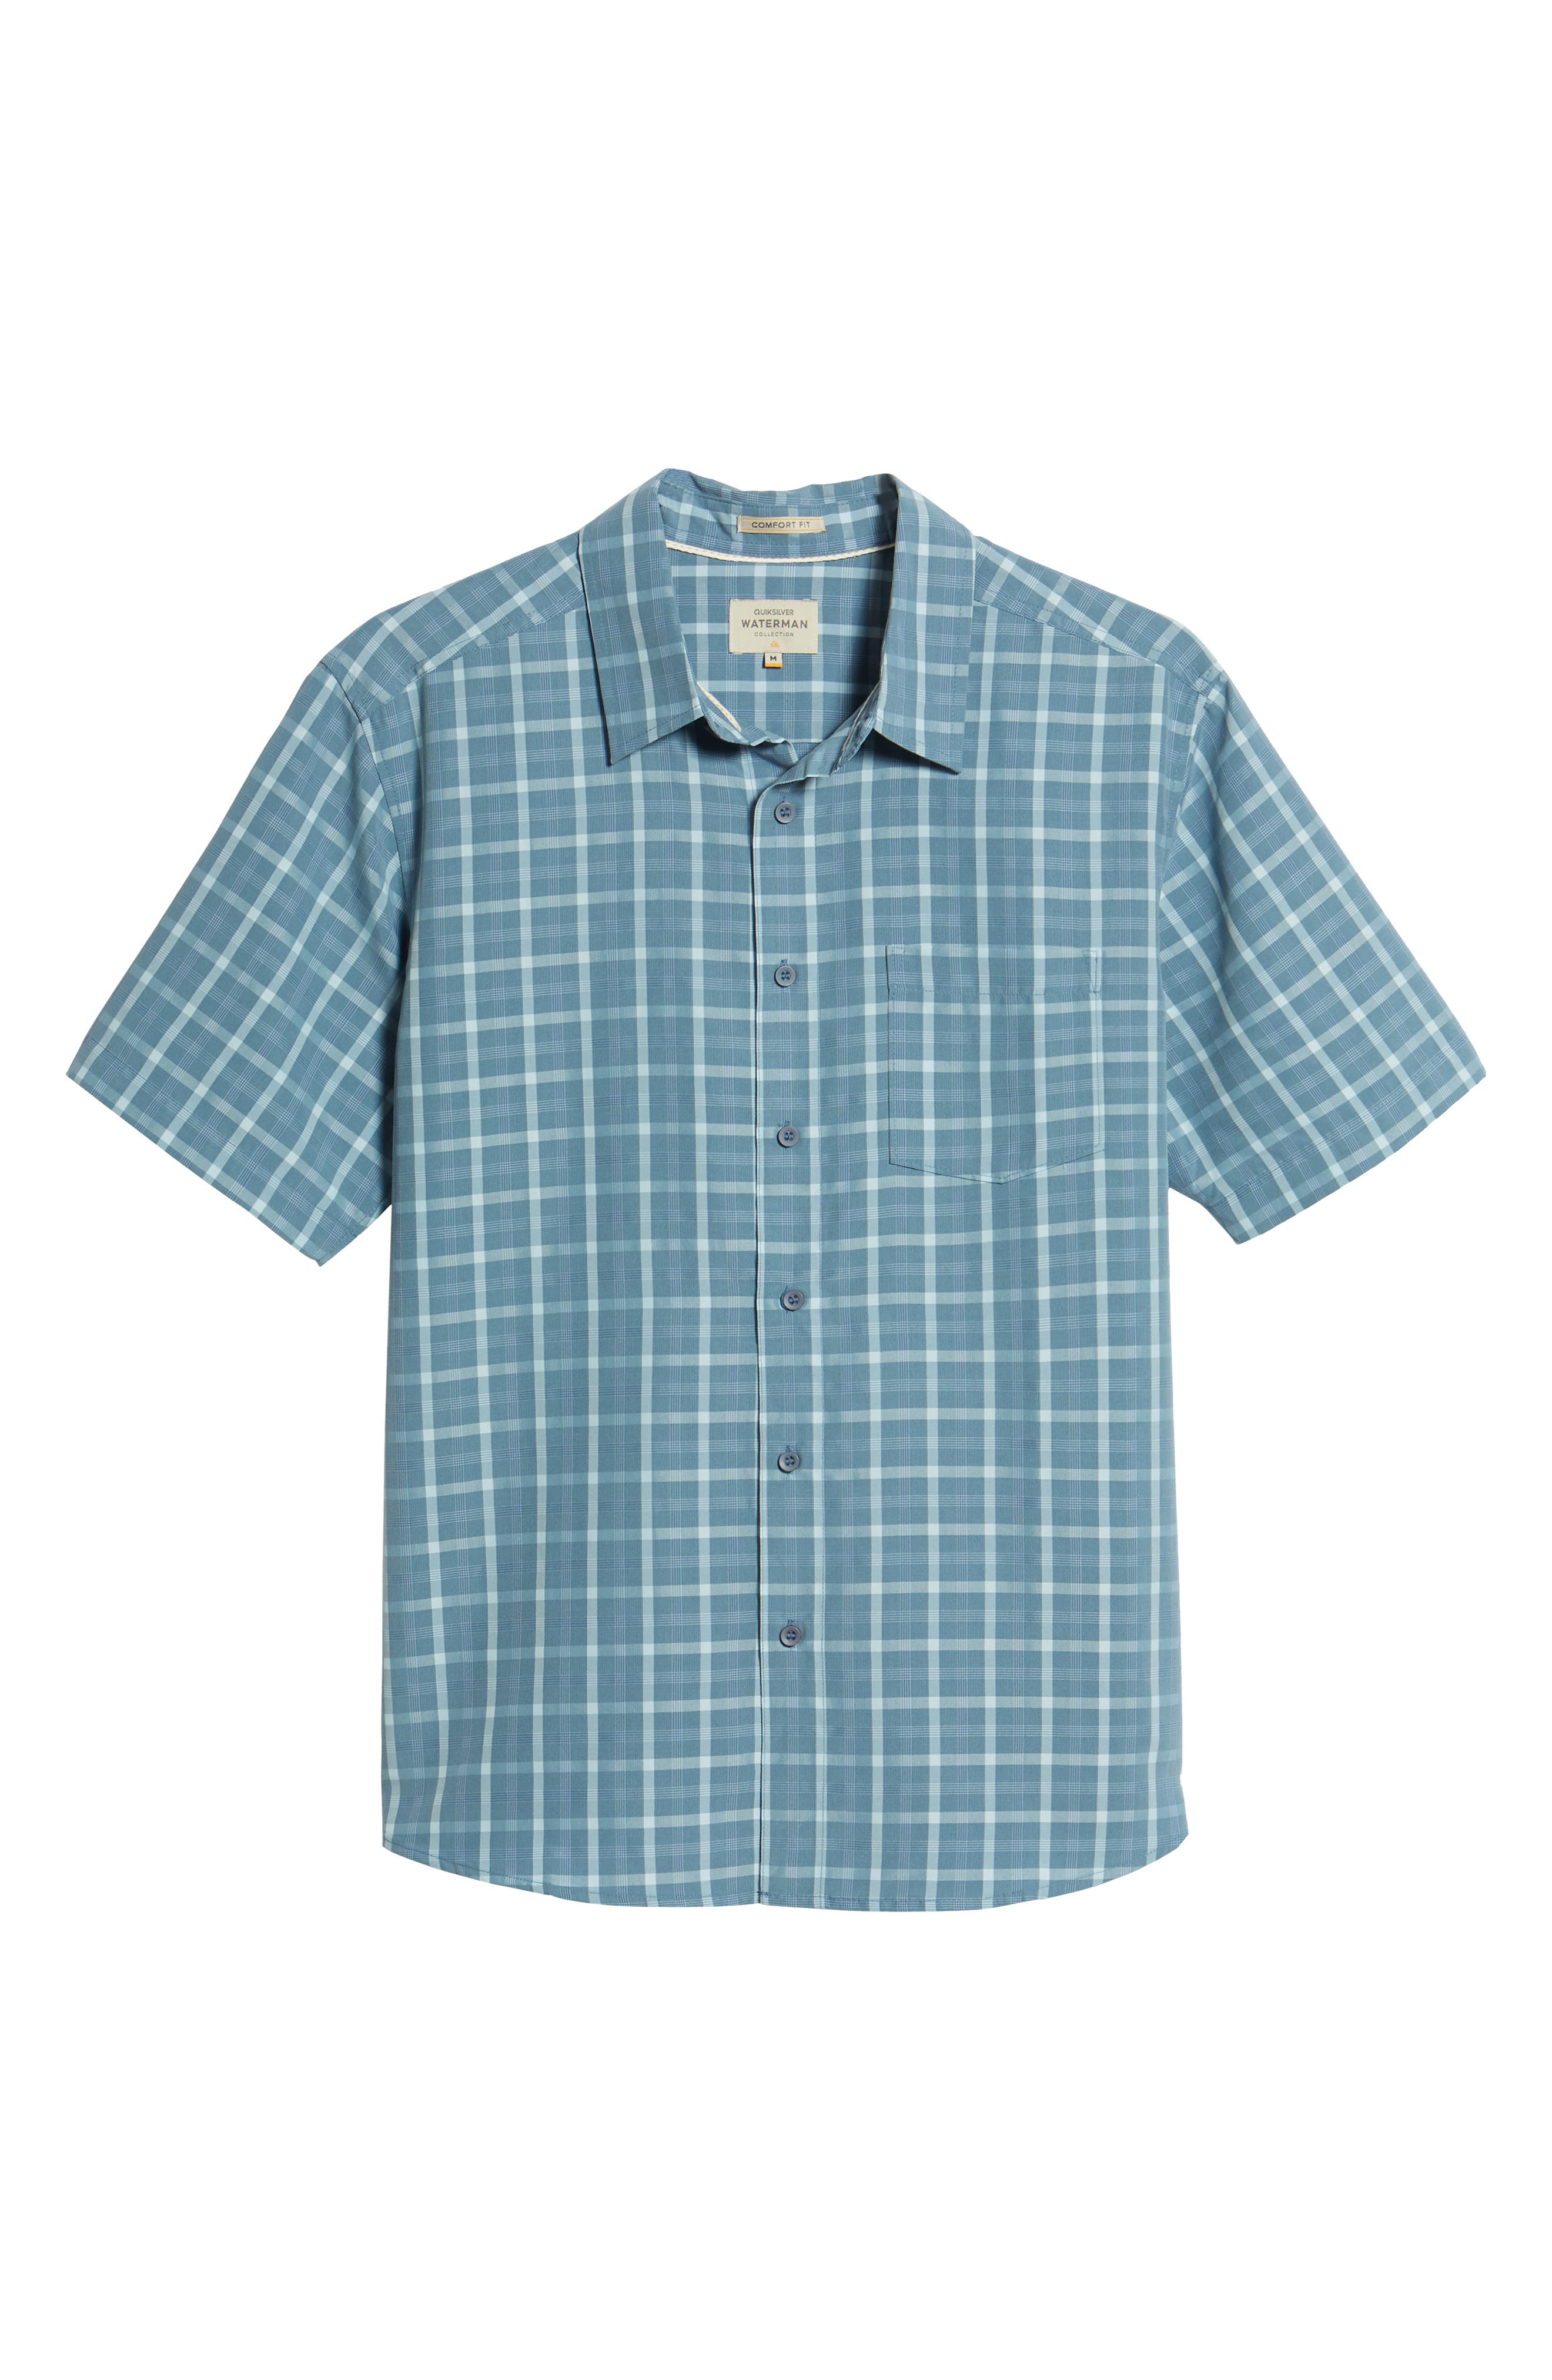 Checked Light Classic Fit Sport Shirt,                             Alternate thumbnail 6, color,                             Blue Shadow